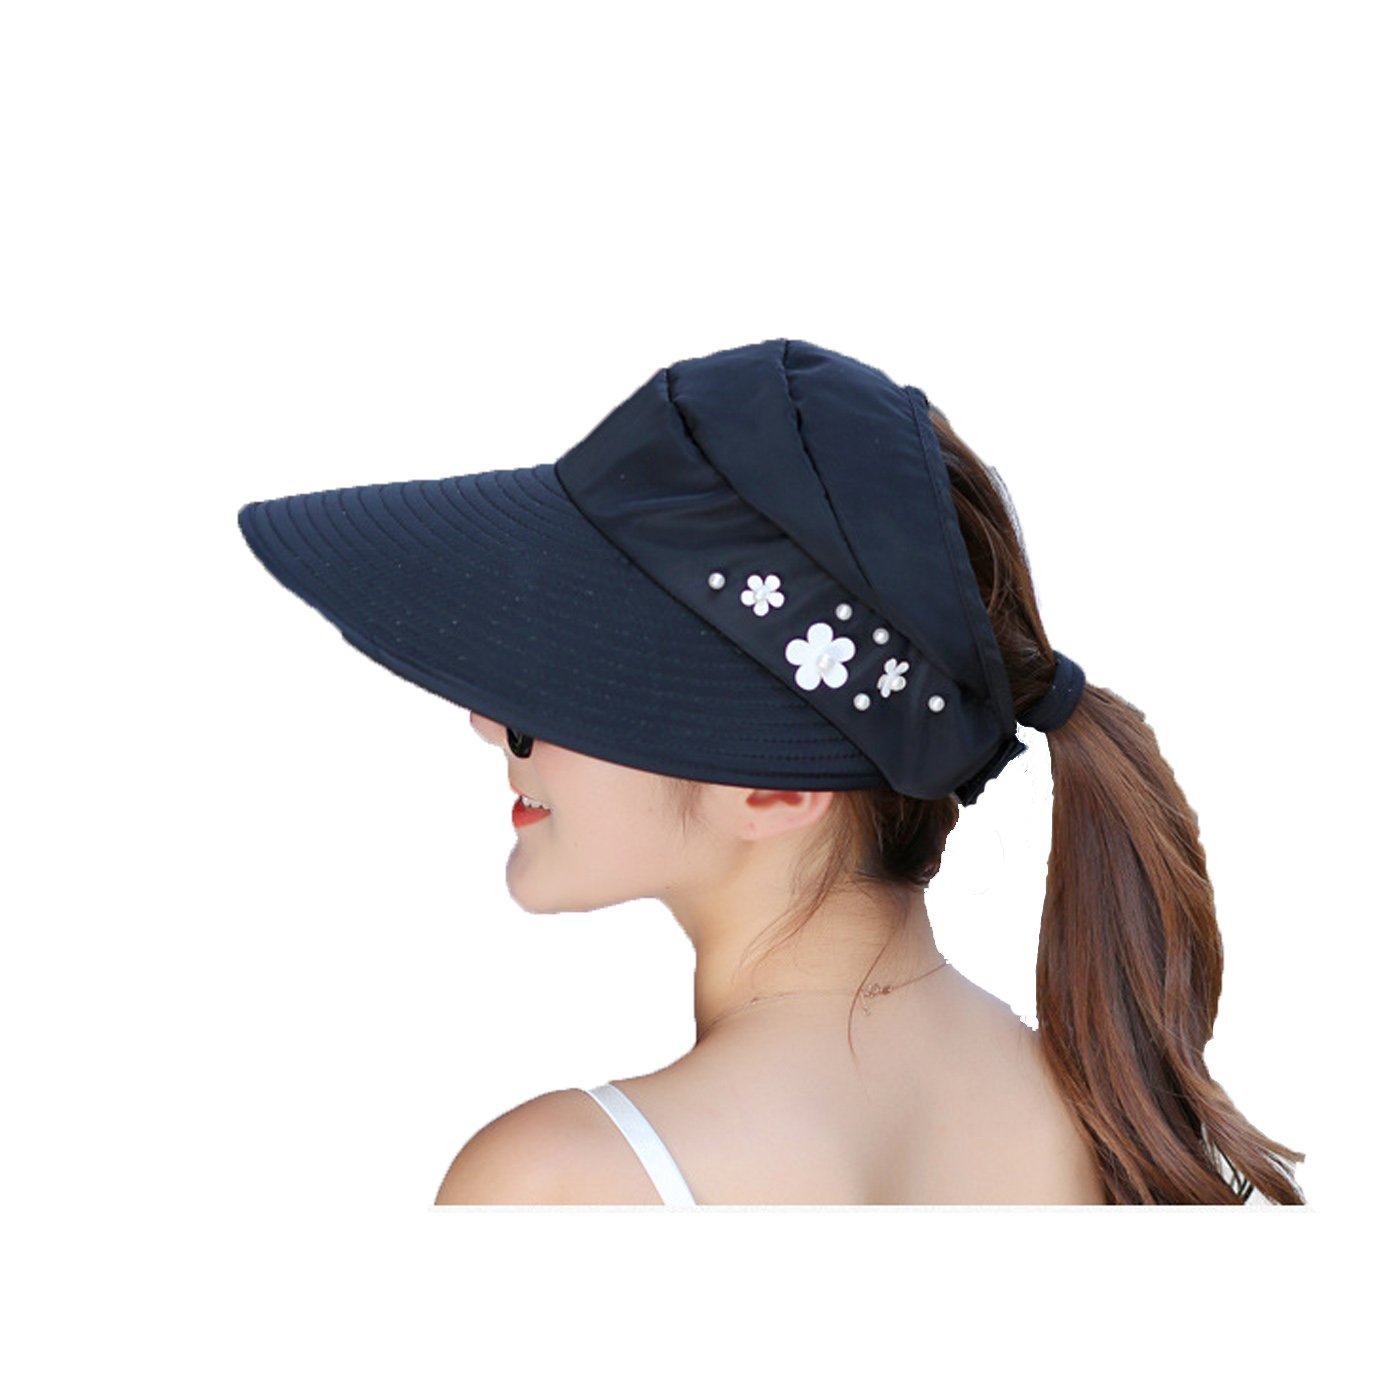 ULUIKY Western Style Women Summer Anti - Uv Road Cycling Sun Hat Beach Sun Hat (5-0)